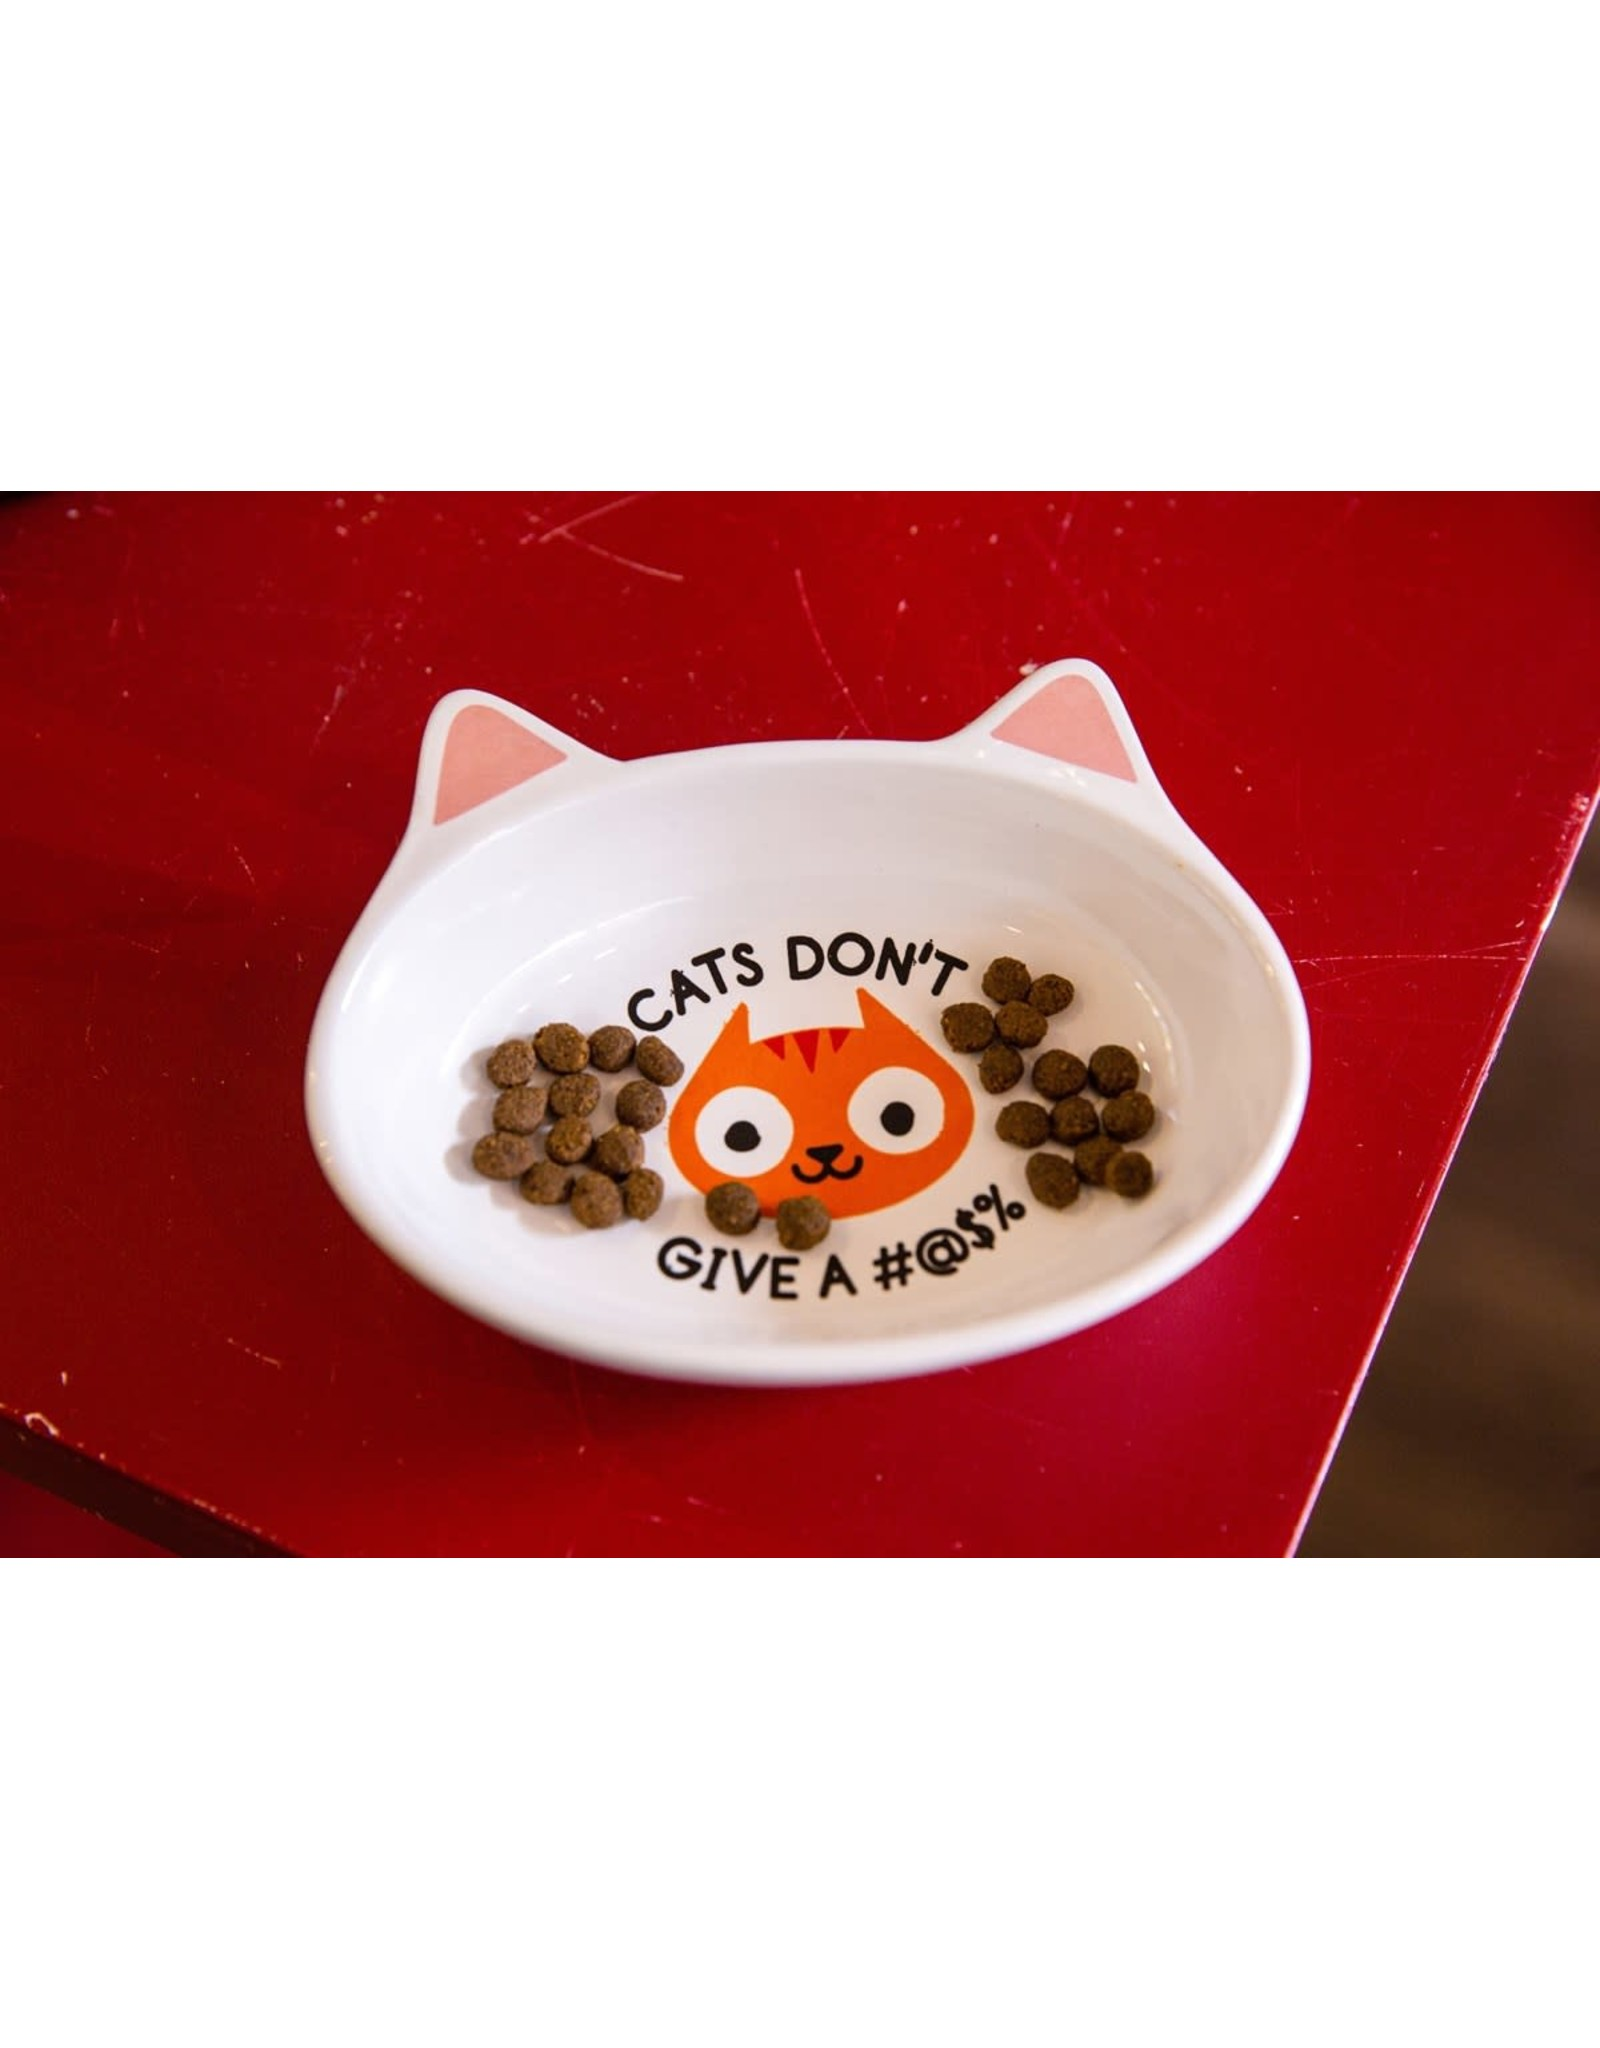 Bigmouth Cat Dish - Cats Don't Give A #@$%